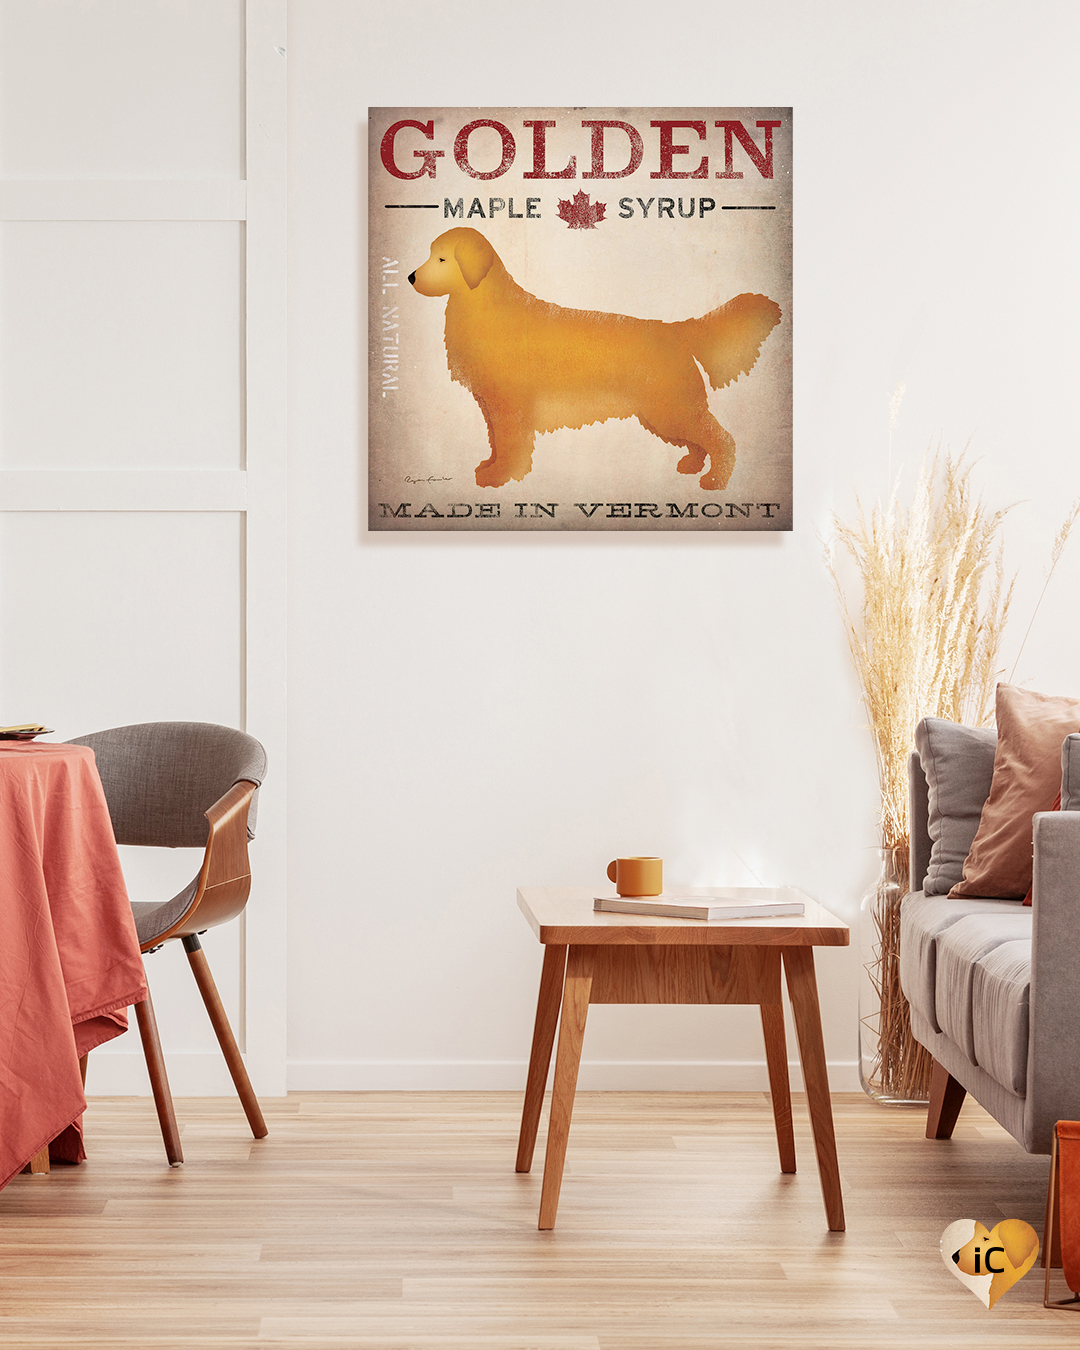 Sign featuring golden retriever as a logo for maple syrup made in Vermont